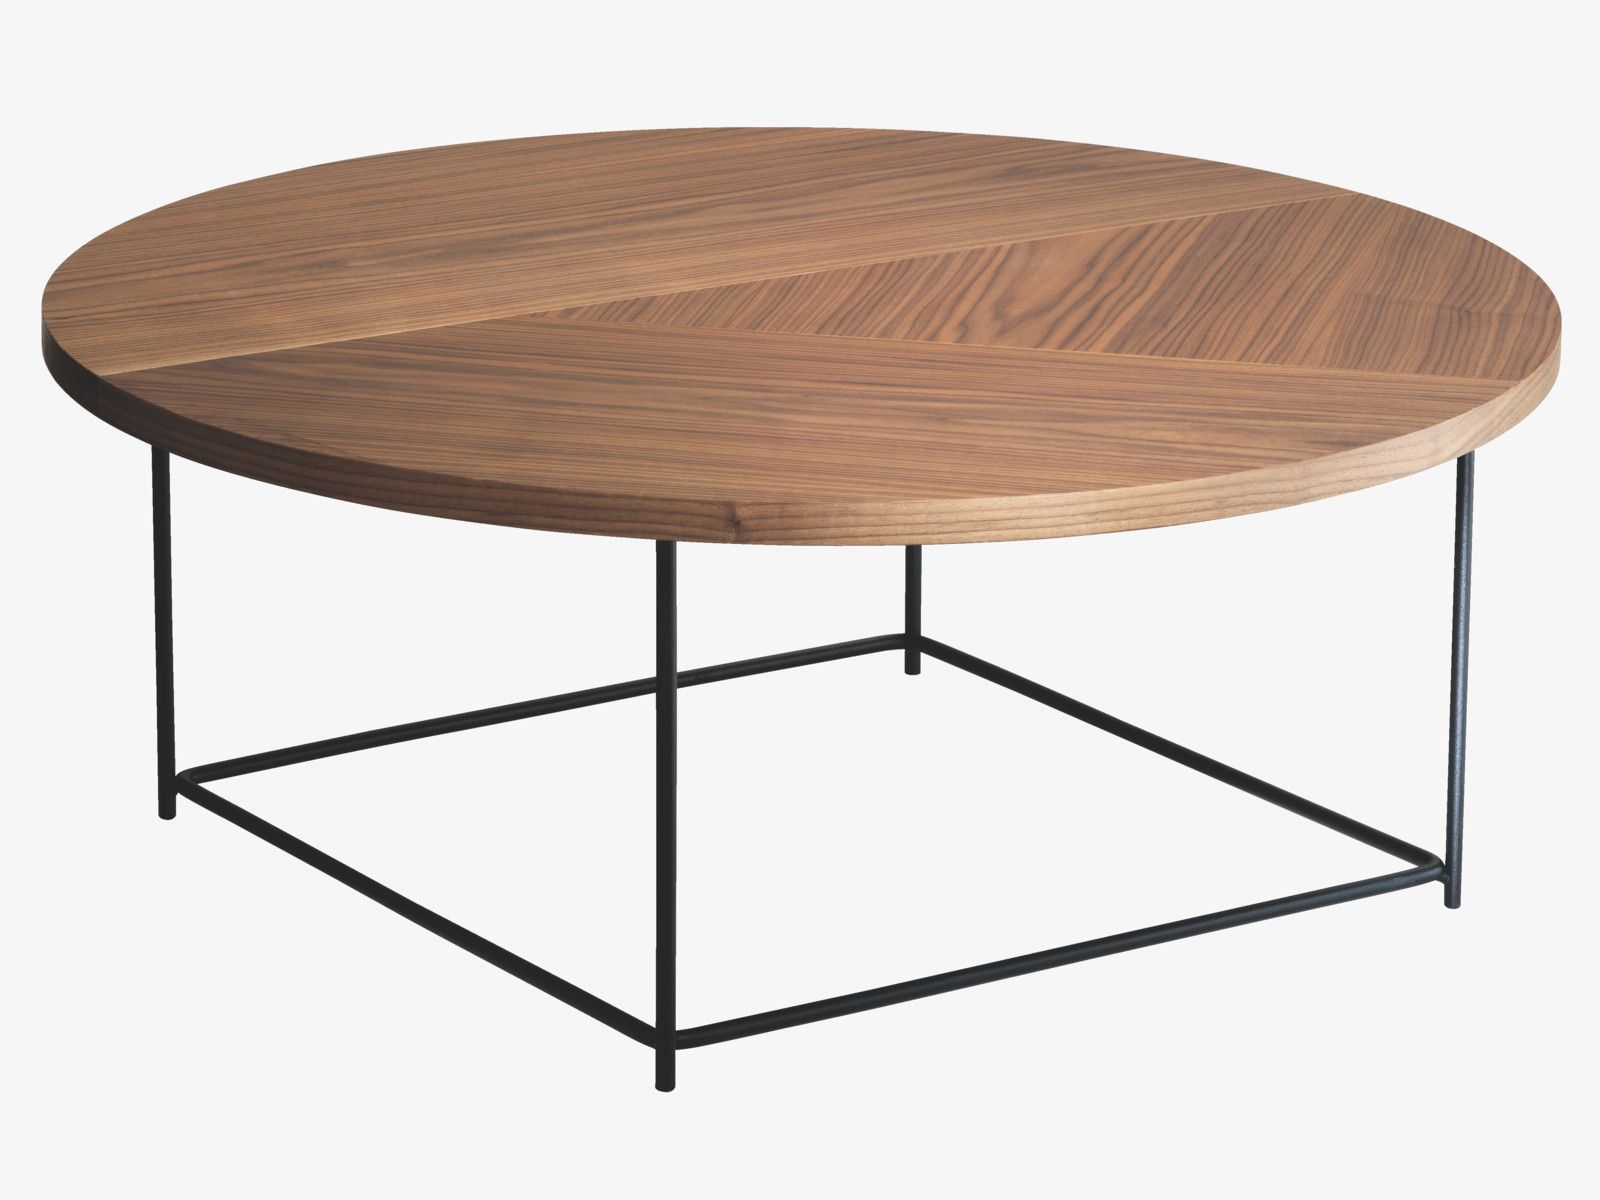 Coralie Browns Wood Low Walnut Coffee Table Habitatuk Coffee Table Coffee Table Habitat Walnut Coffee Table [ 1200 x 1600 Pixel ]